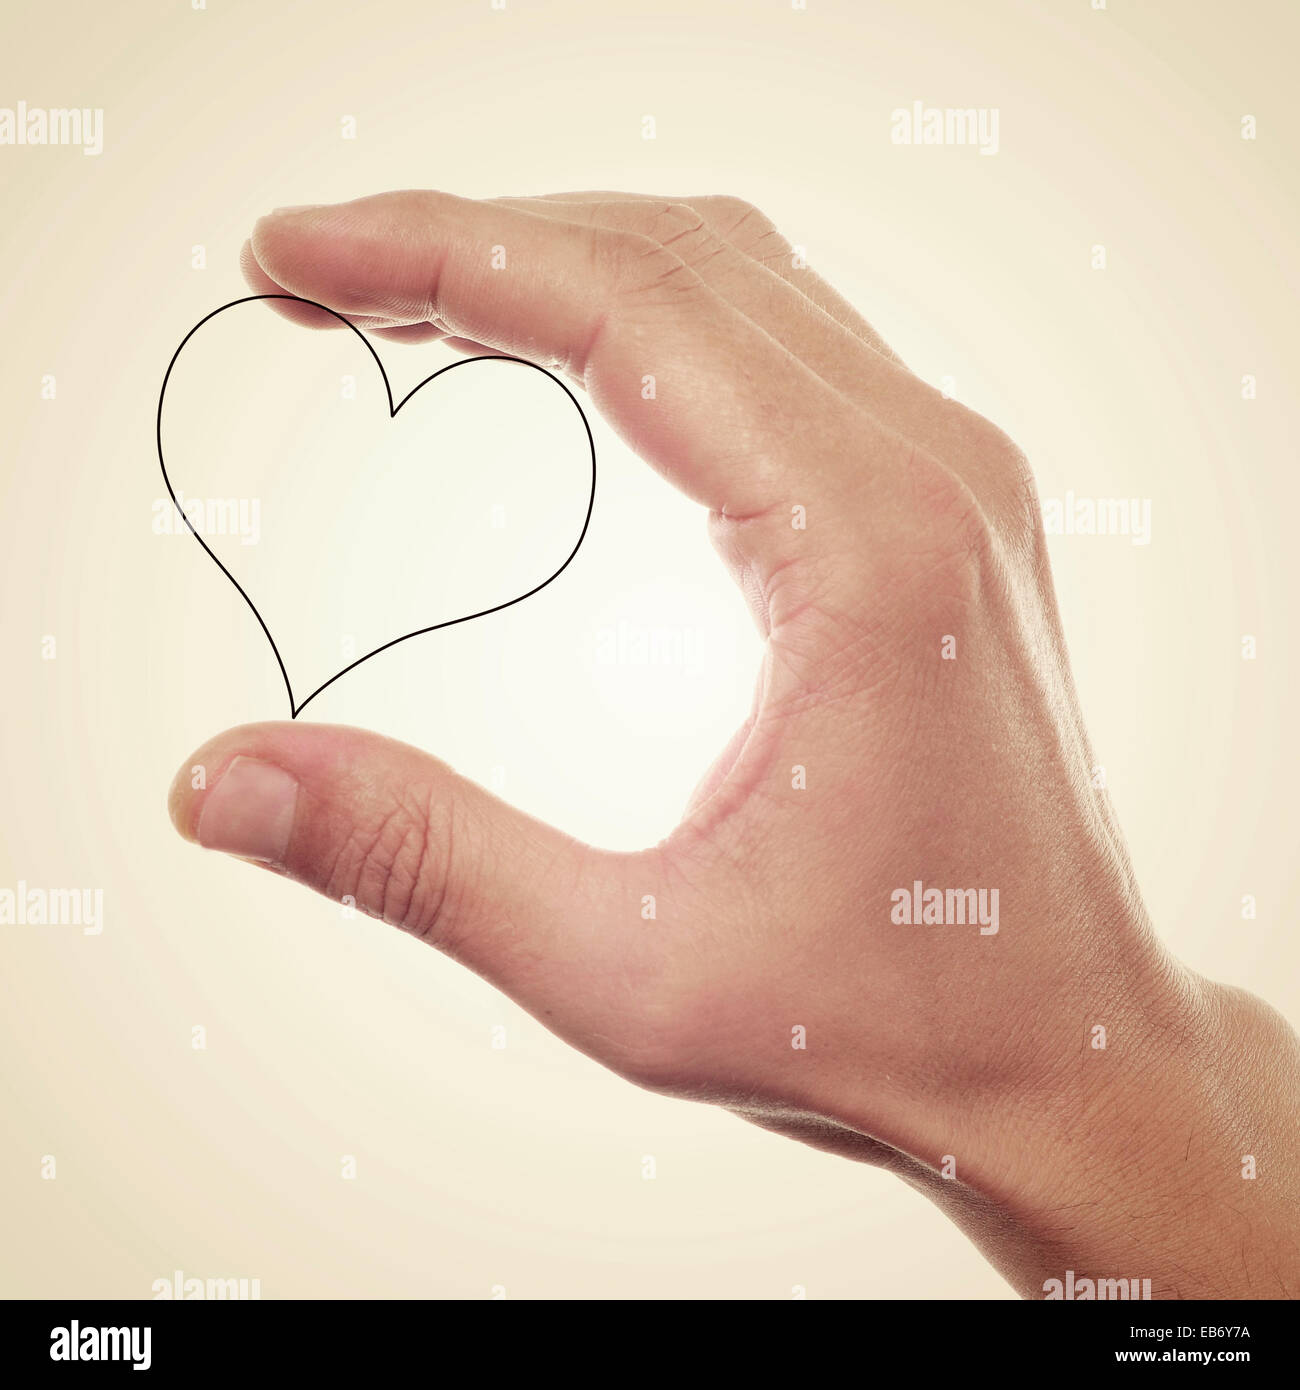 picture of someone holding a drawn heart in his hand, with a retro effect - Stock Image